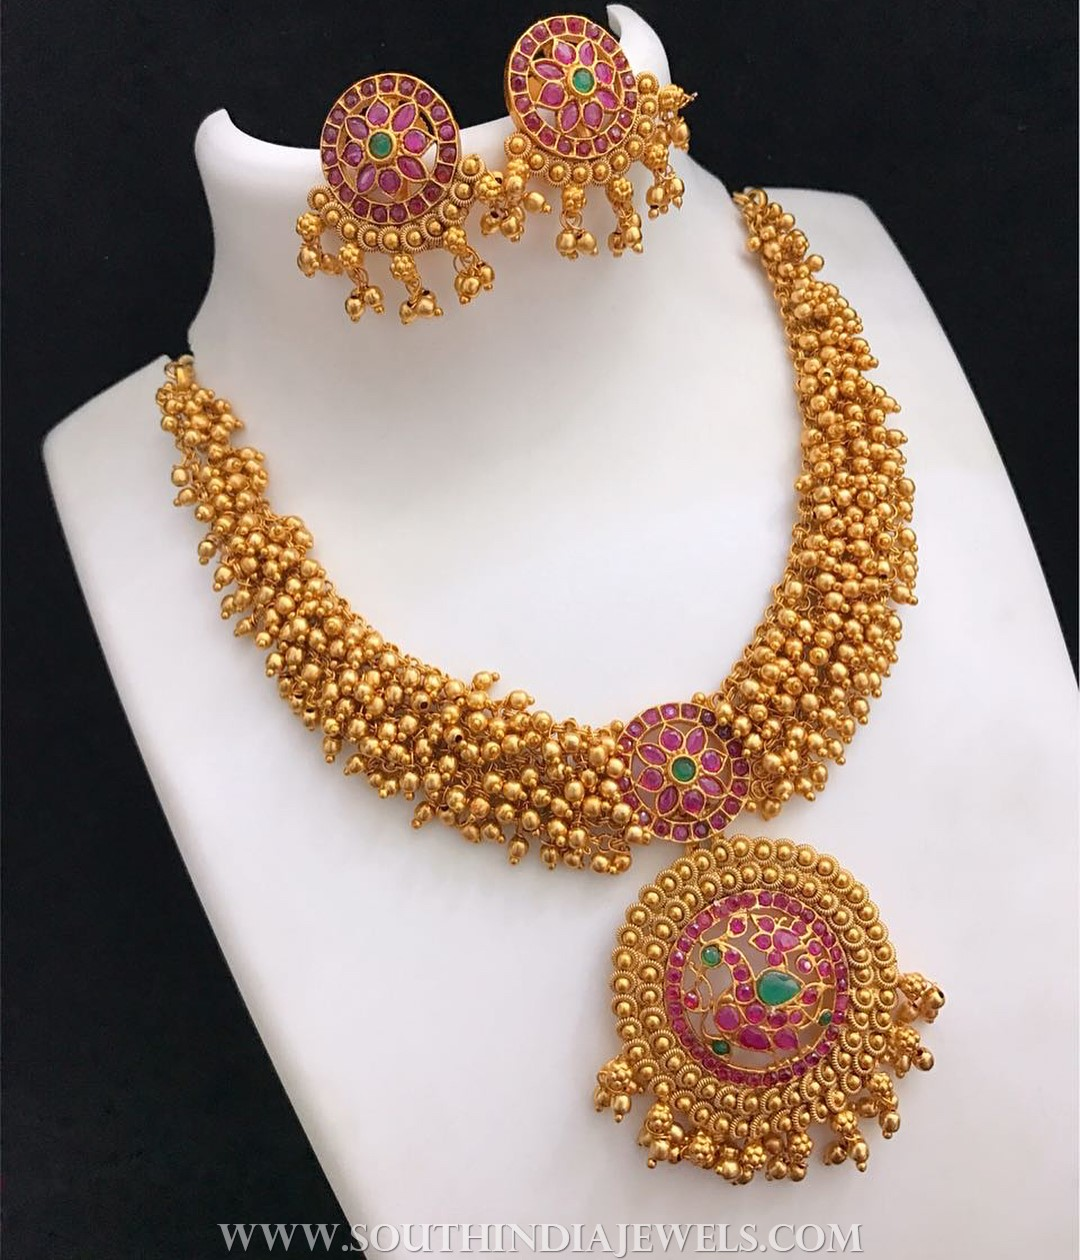 ruby bentex antique set sardarji necklace walley panna choker